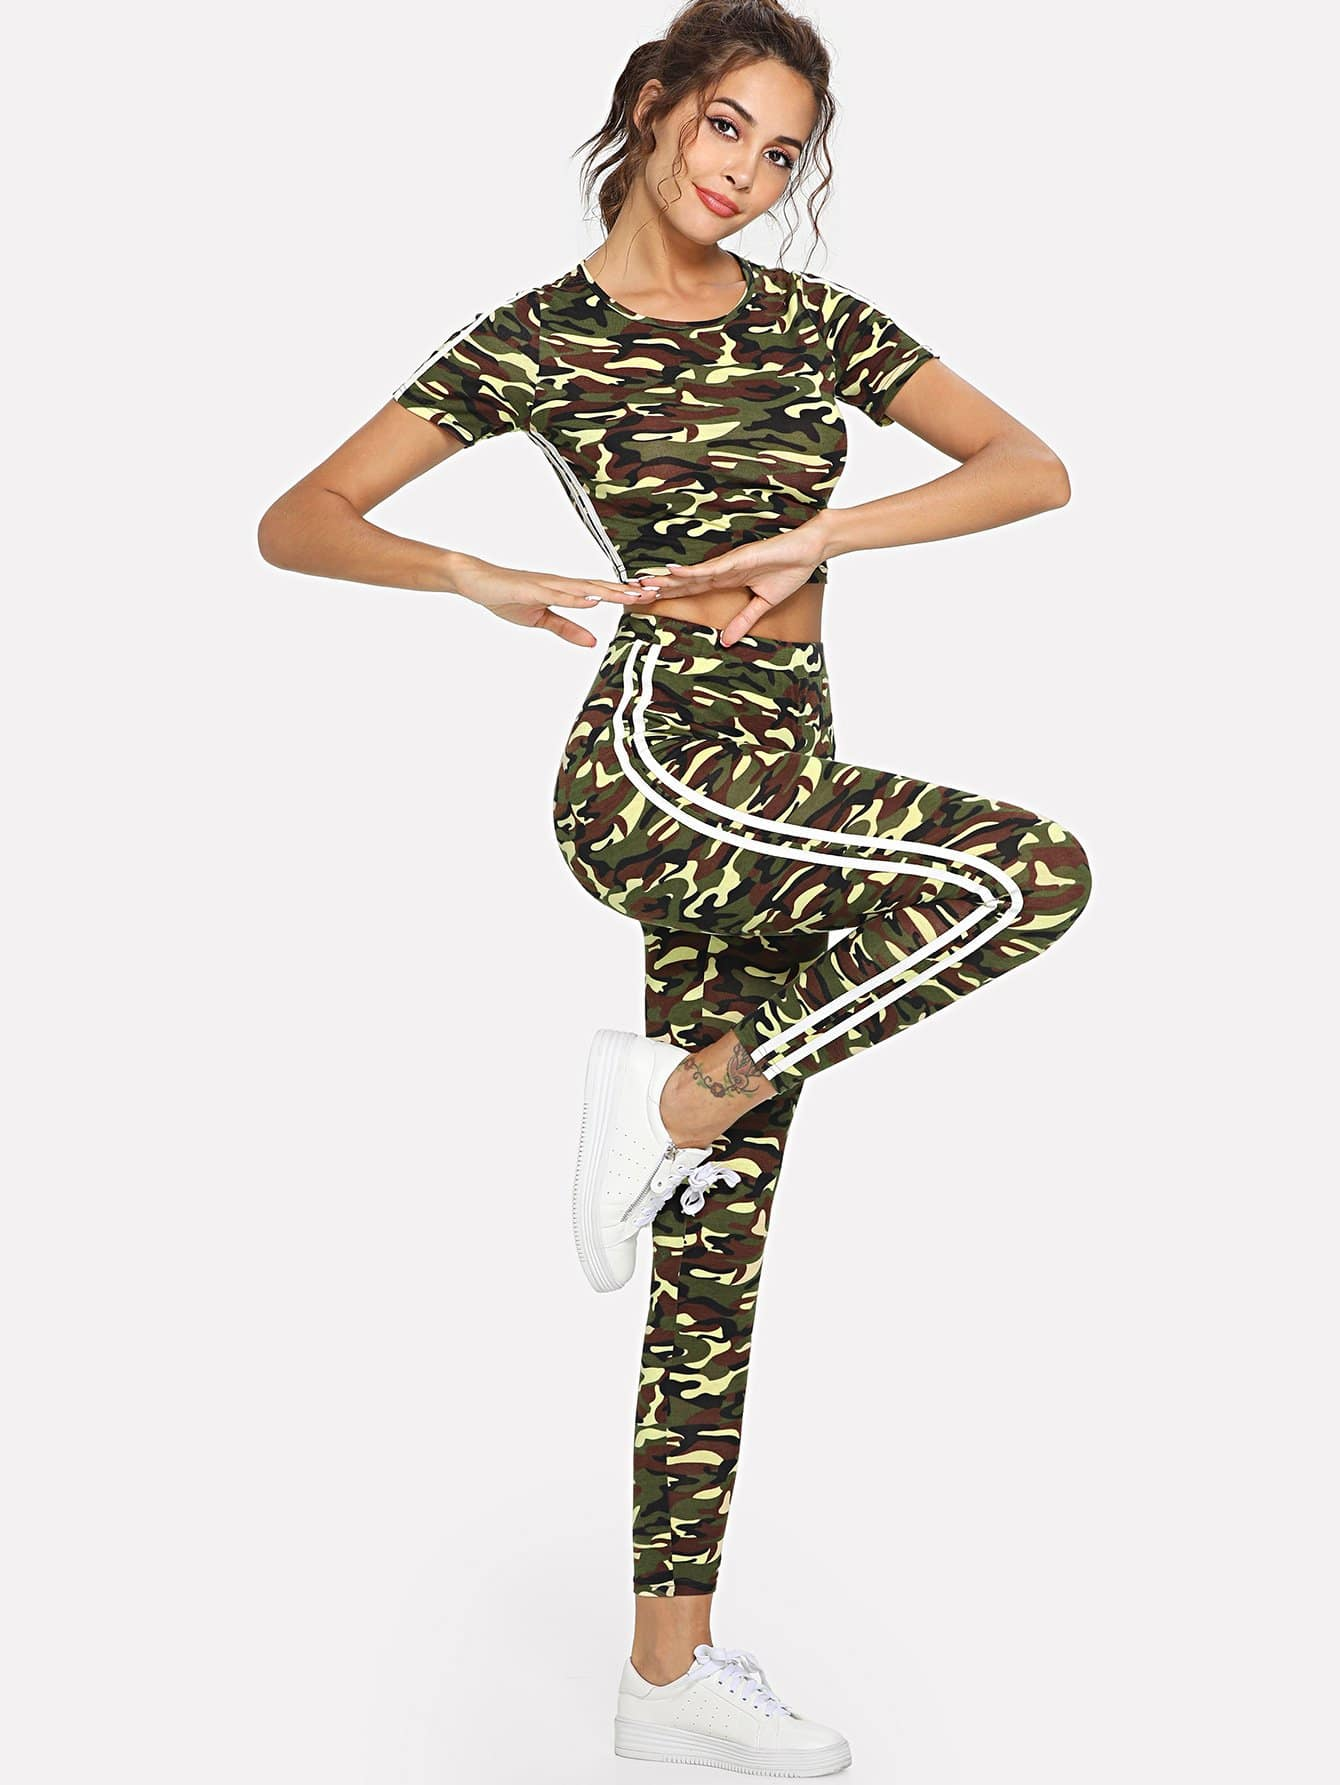 Camo Print Crop Top and Drawstring Waist Leggings Set high waist camo print skinny leggings